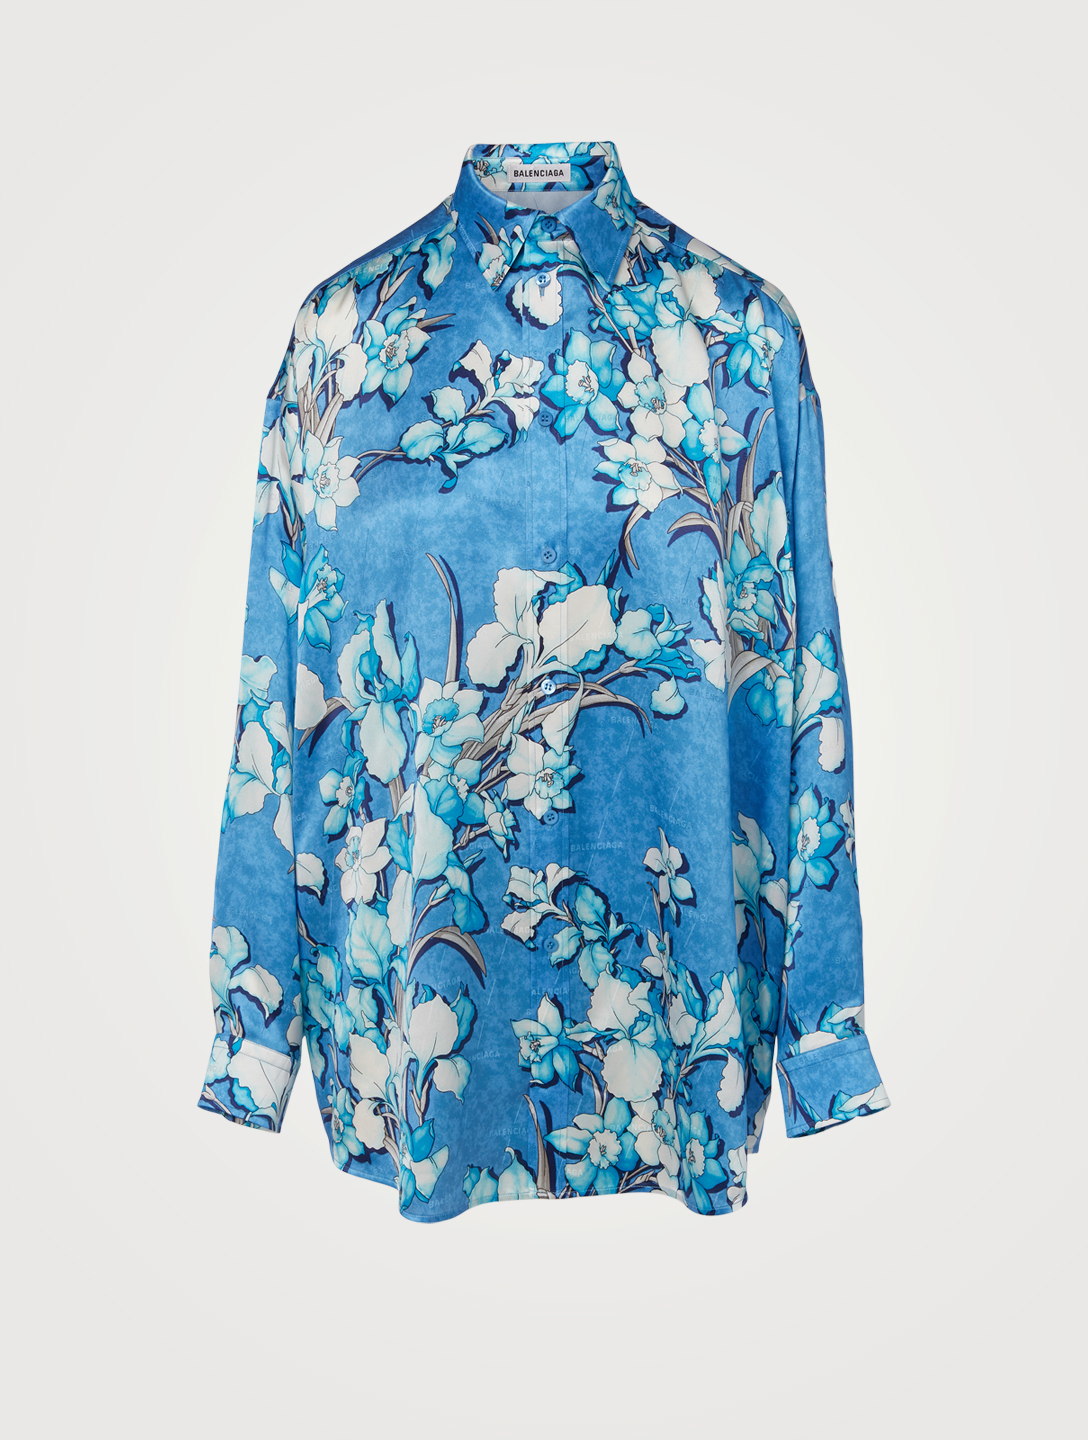 BALENCIAGA Silk Jacquard Blouse In Lily Print Women's Blue